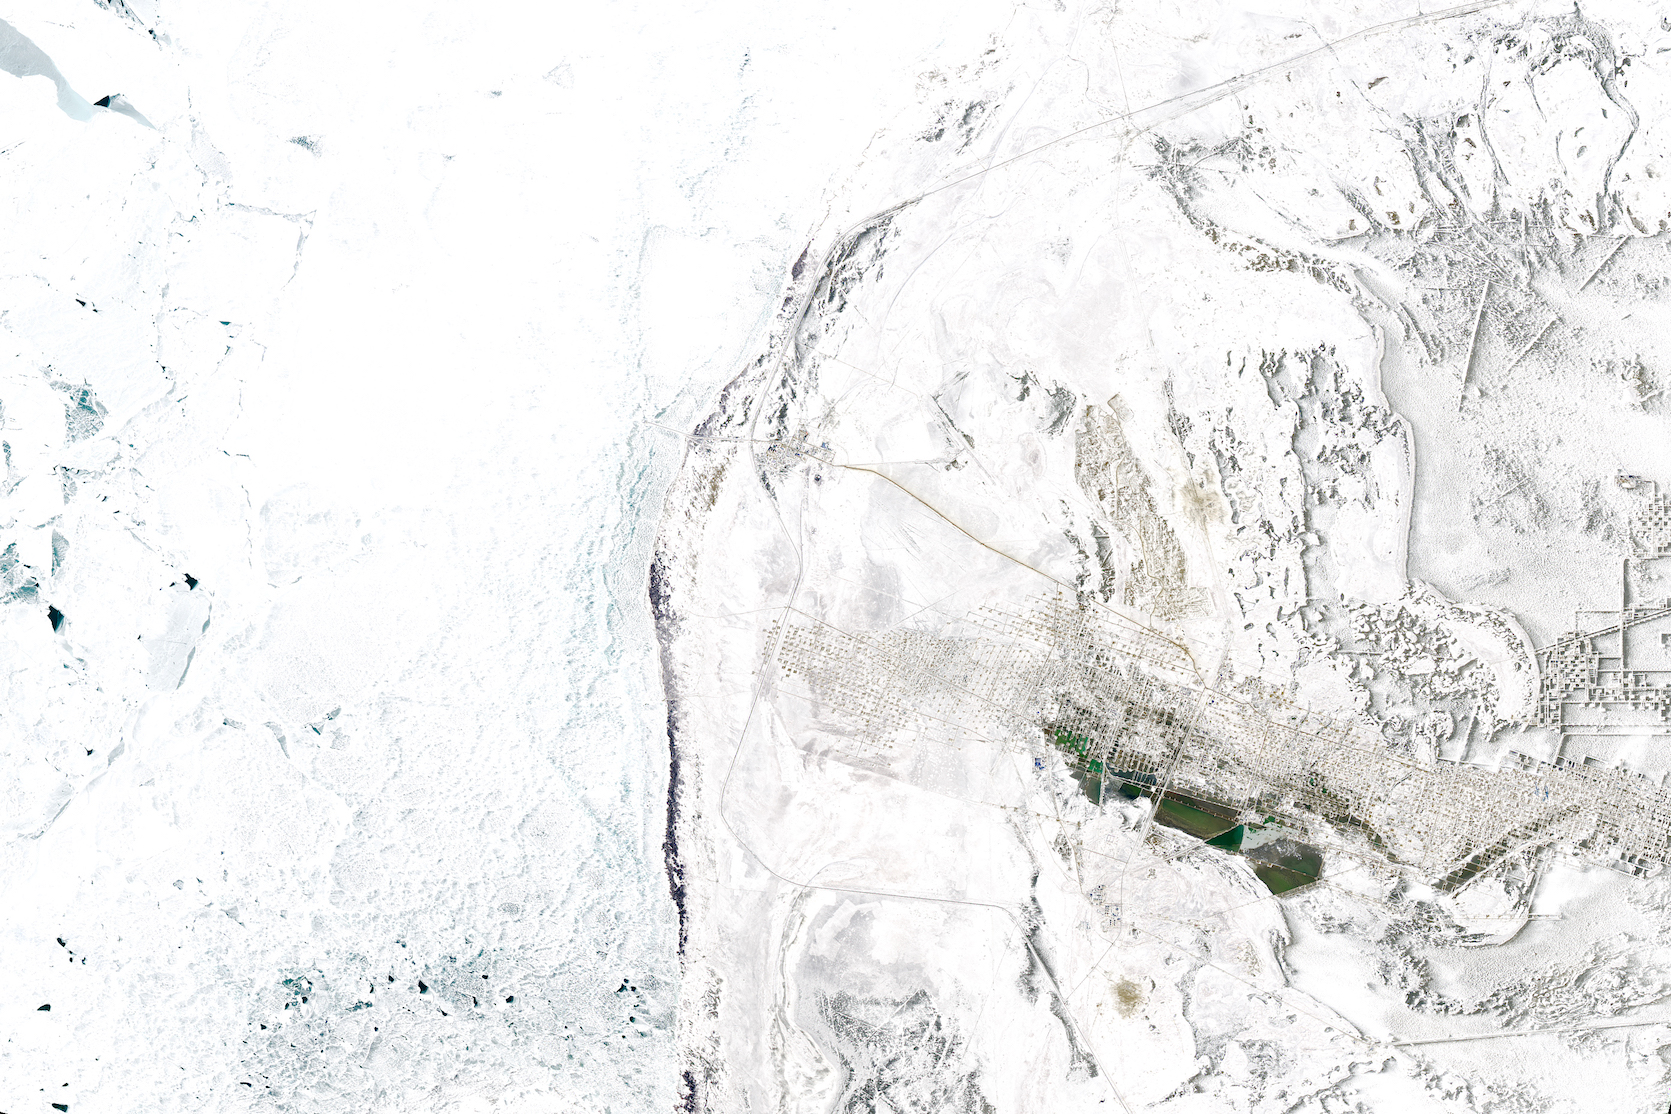 Today's Image of the Day comes thanks to the NASA Earth Observatory and features a look at the Karazhanbas oil field in the Mangystau Province of Kazakhstan